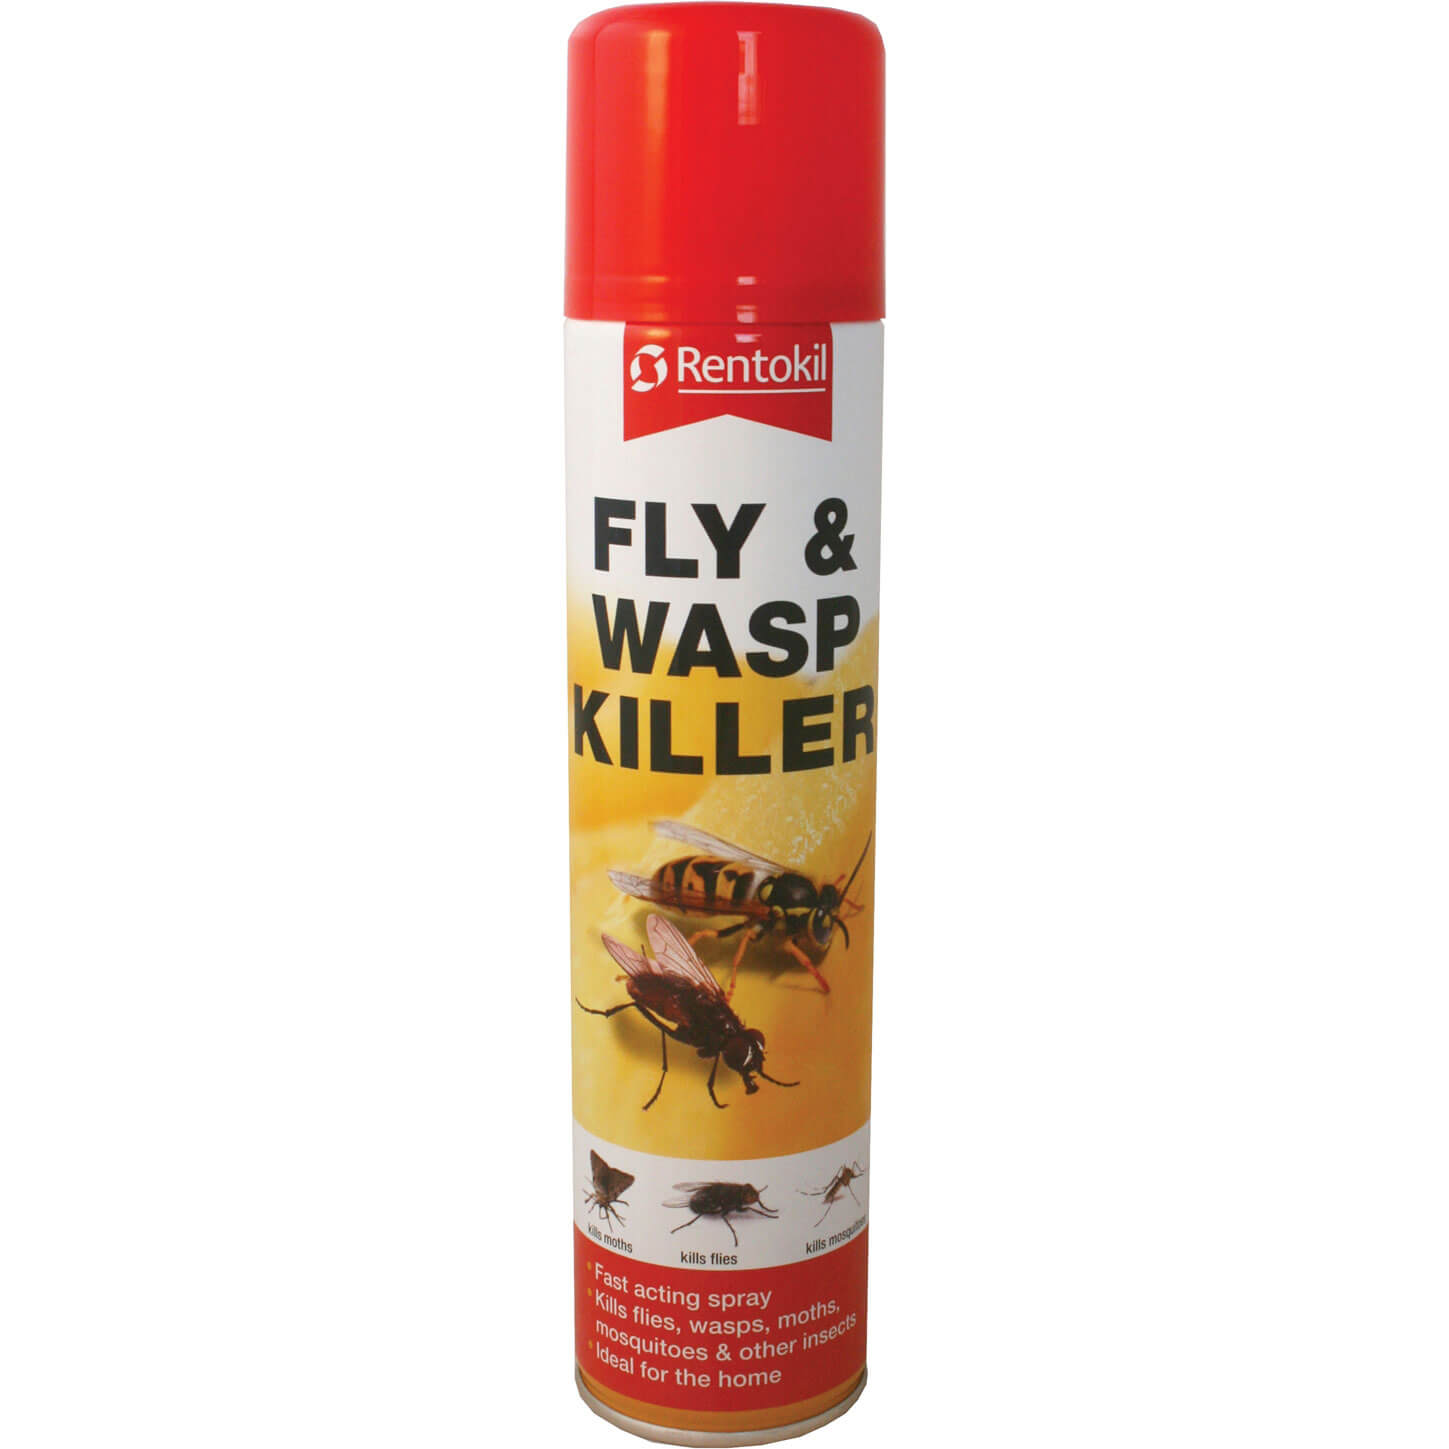 Image of Rentokil Fly and Wasp Killer Aerosol 300ml